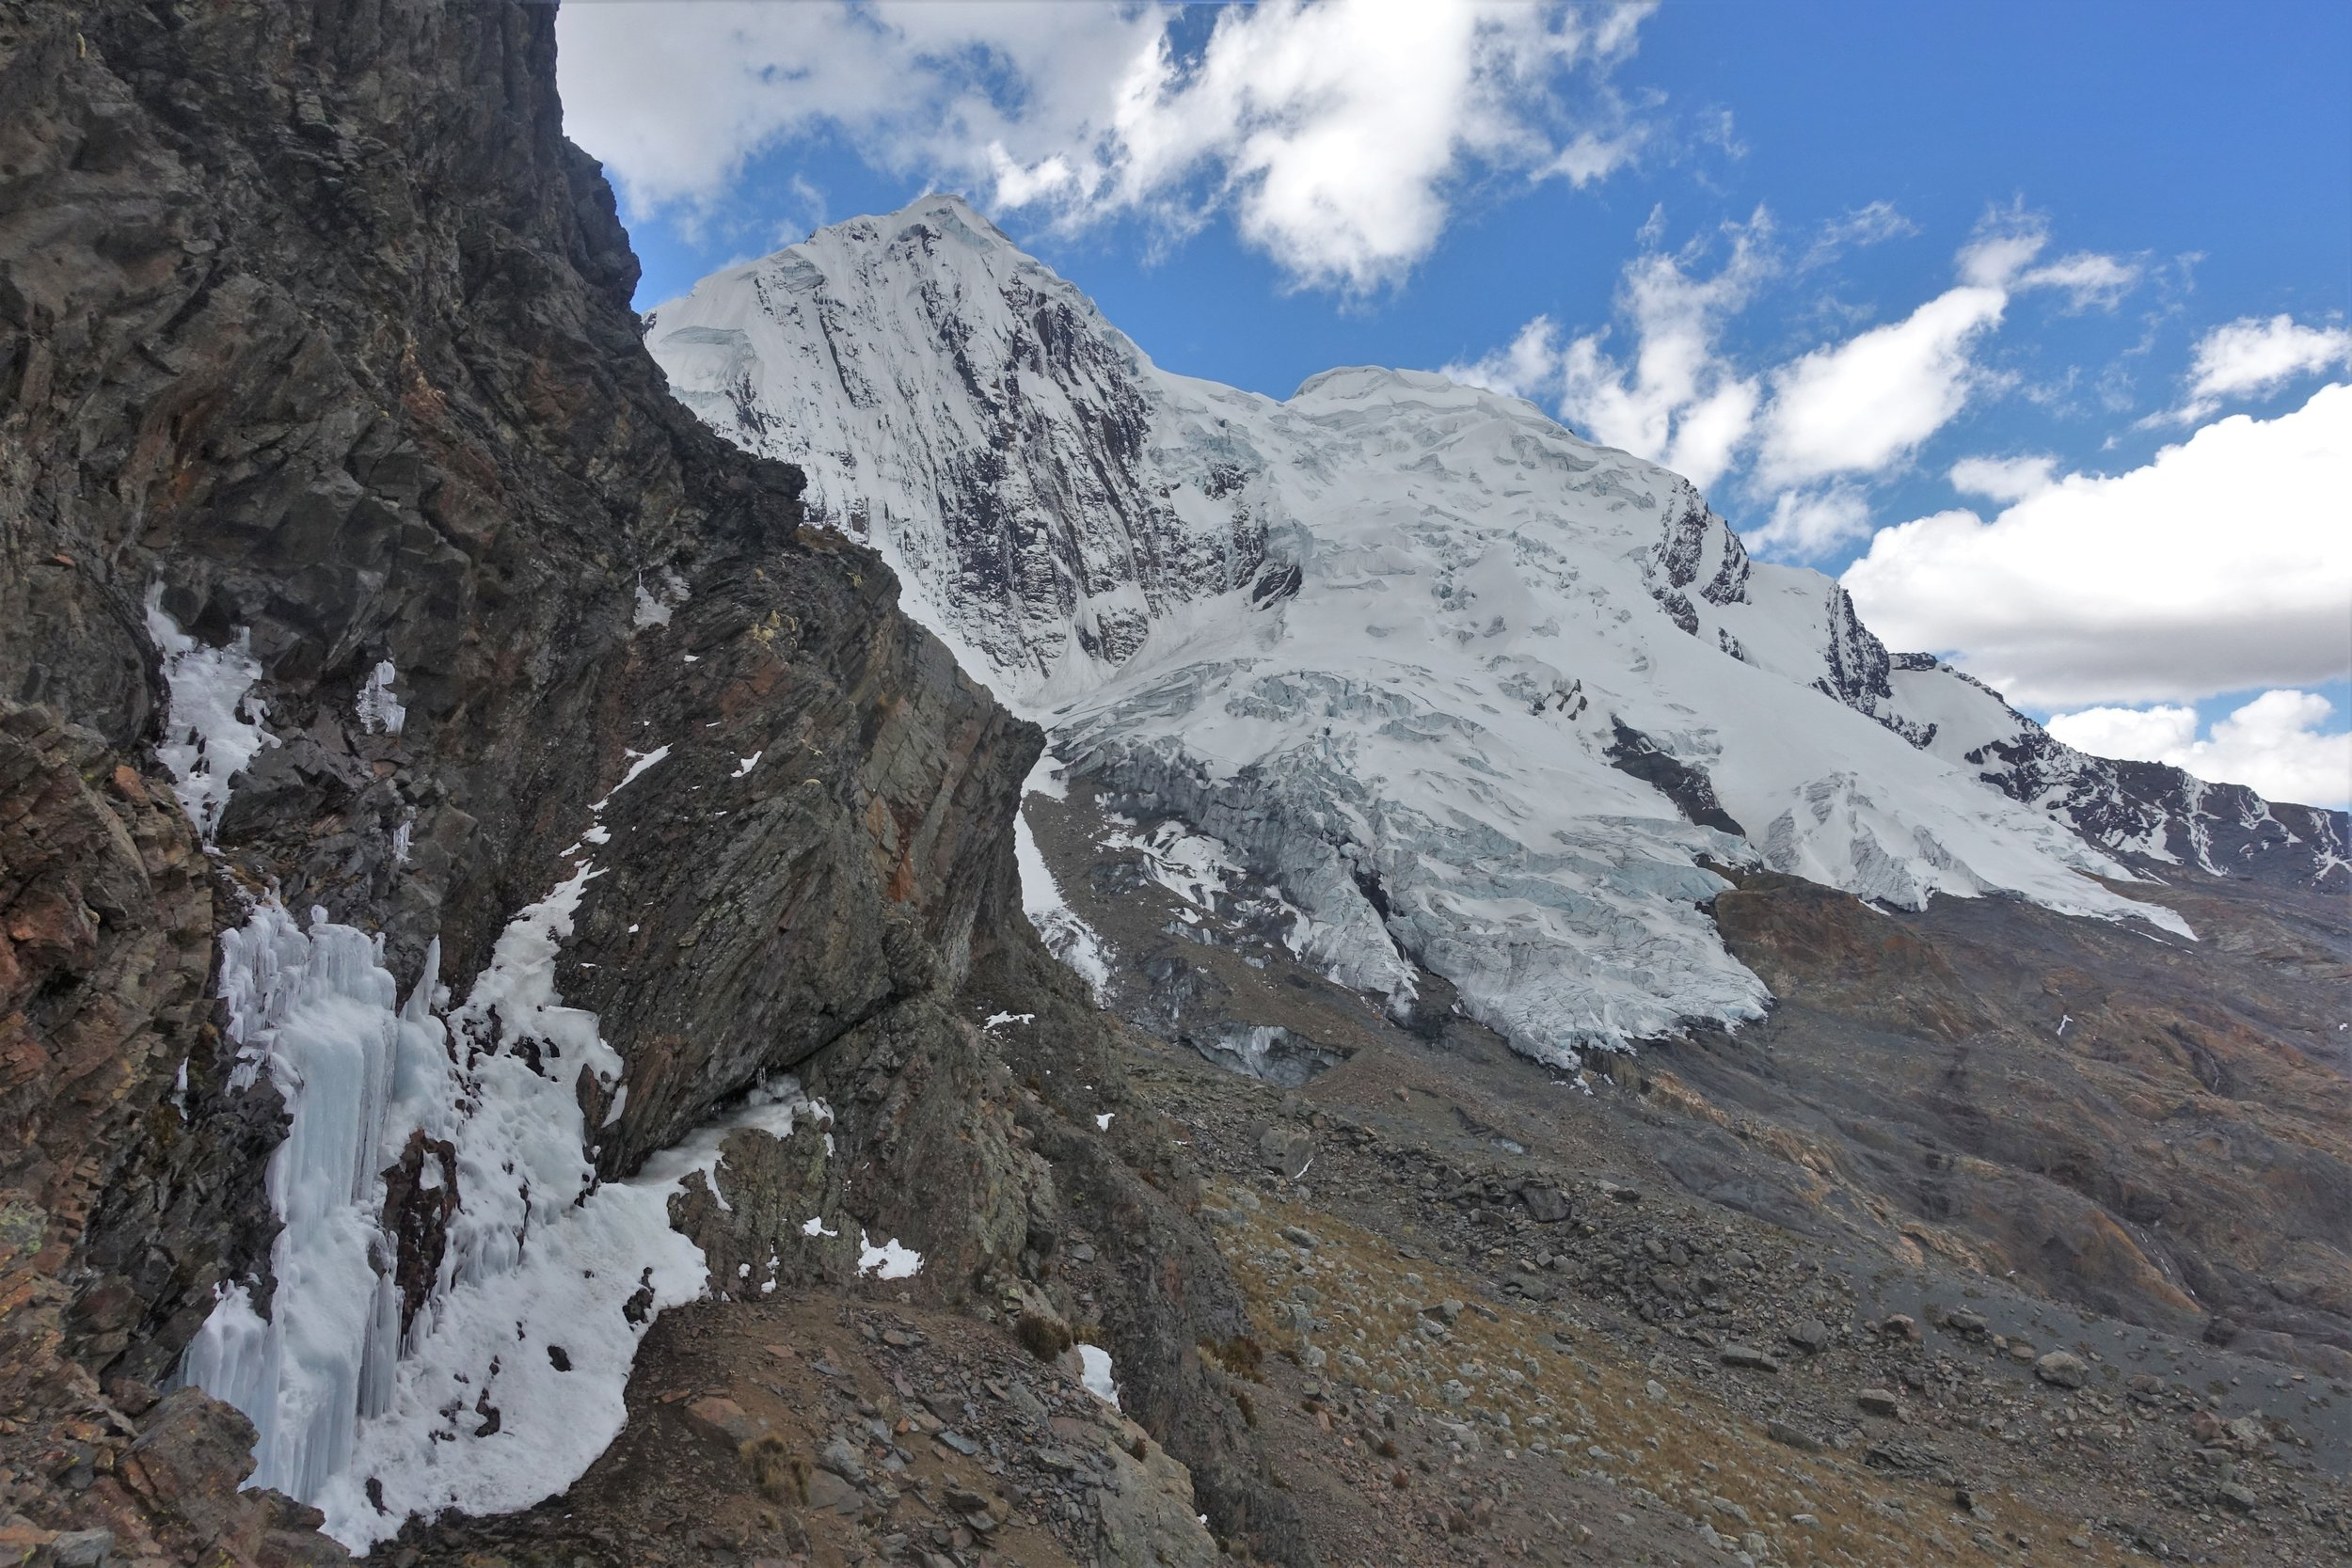 The South Face of Mururaju had significantly less snow and ice on the face than in 1999 and the glacier had retreated significantly.